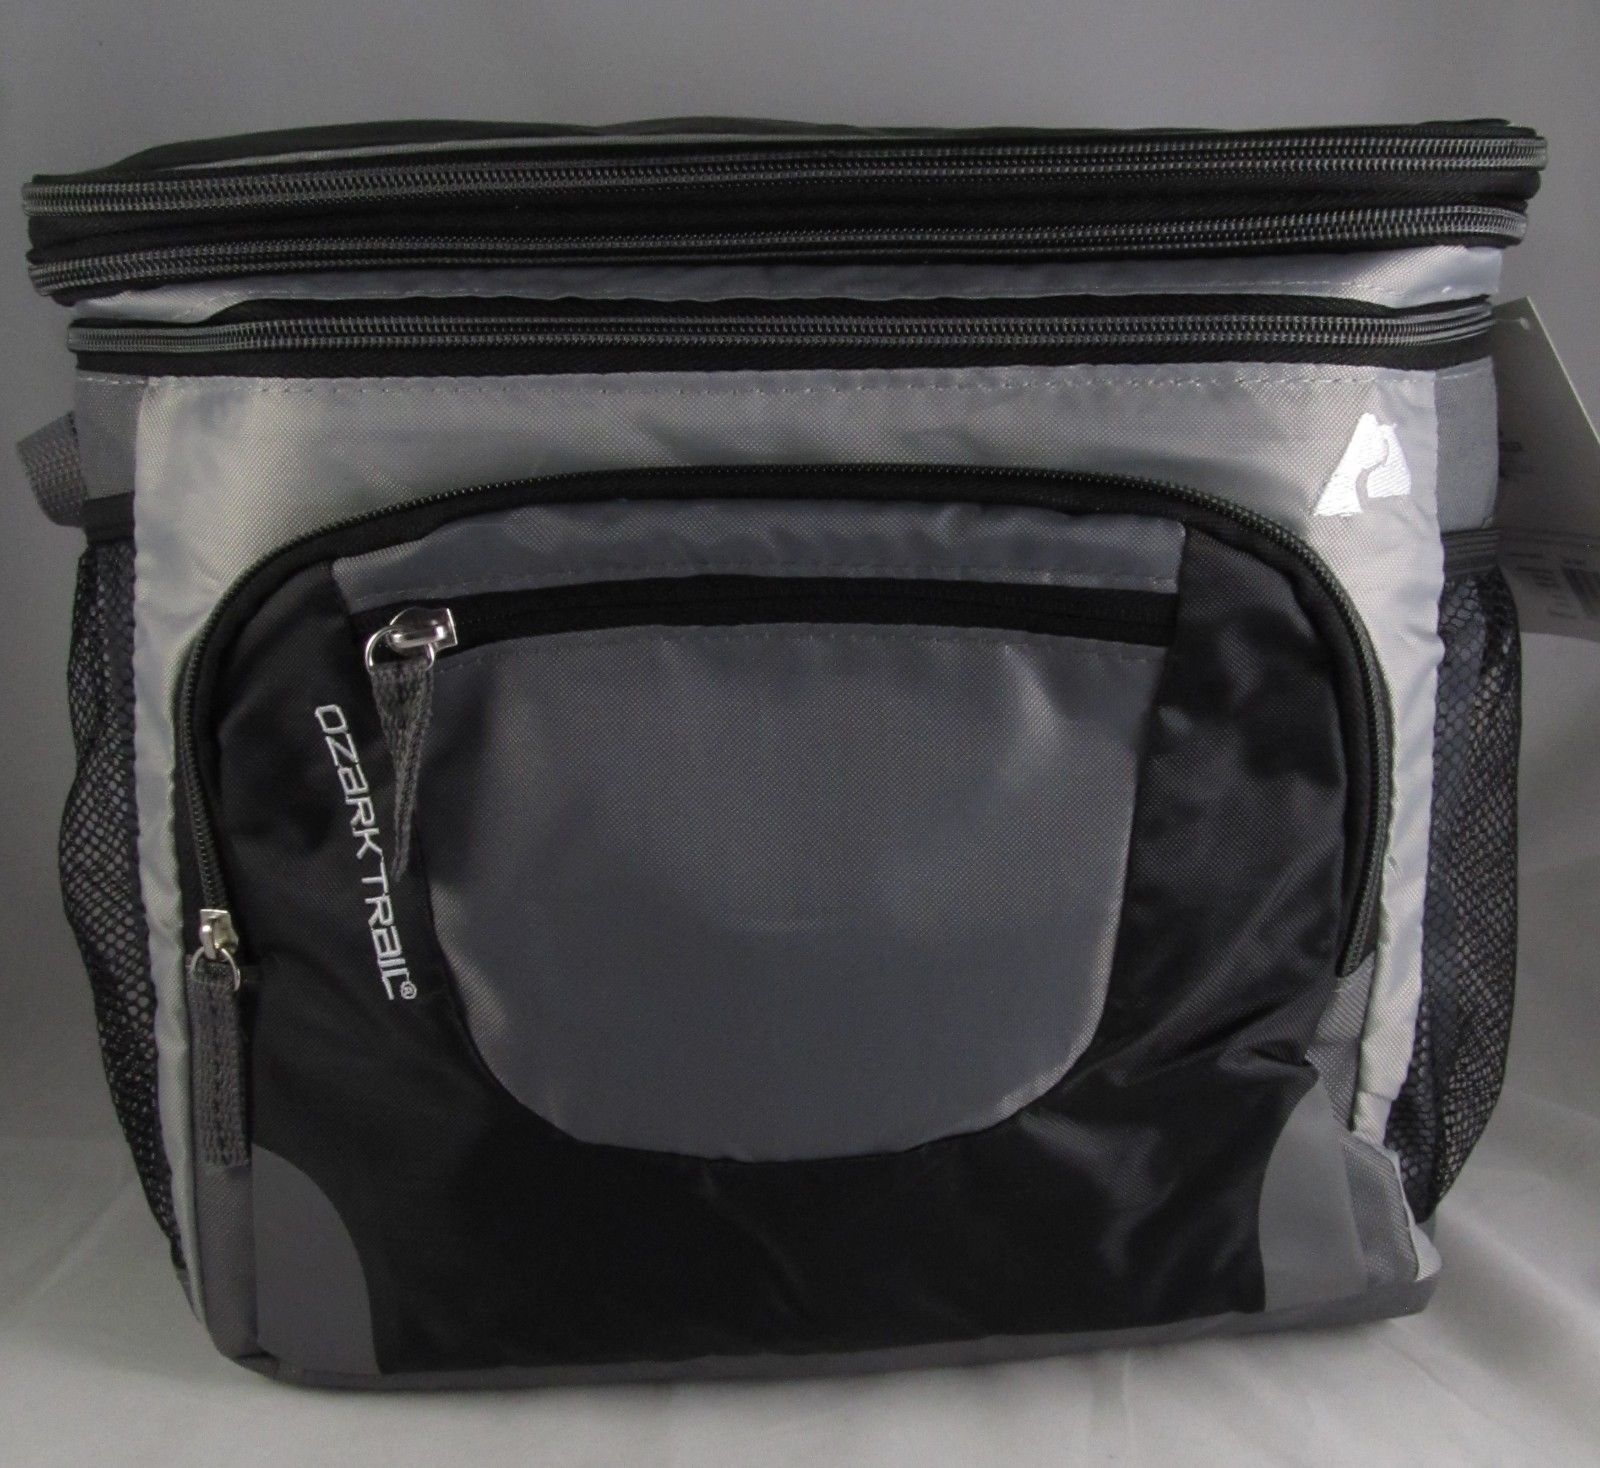 New Wholesale Ozark Trail 24 can Expandable Soft-Sided Cooler Ice Chest Tote Bag